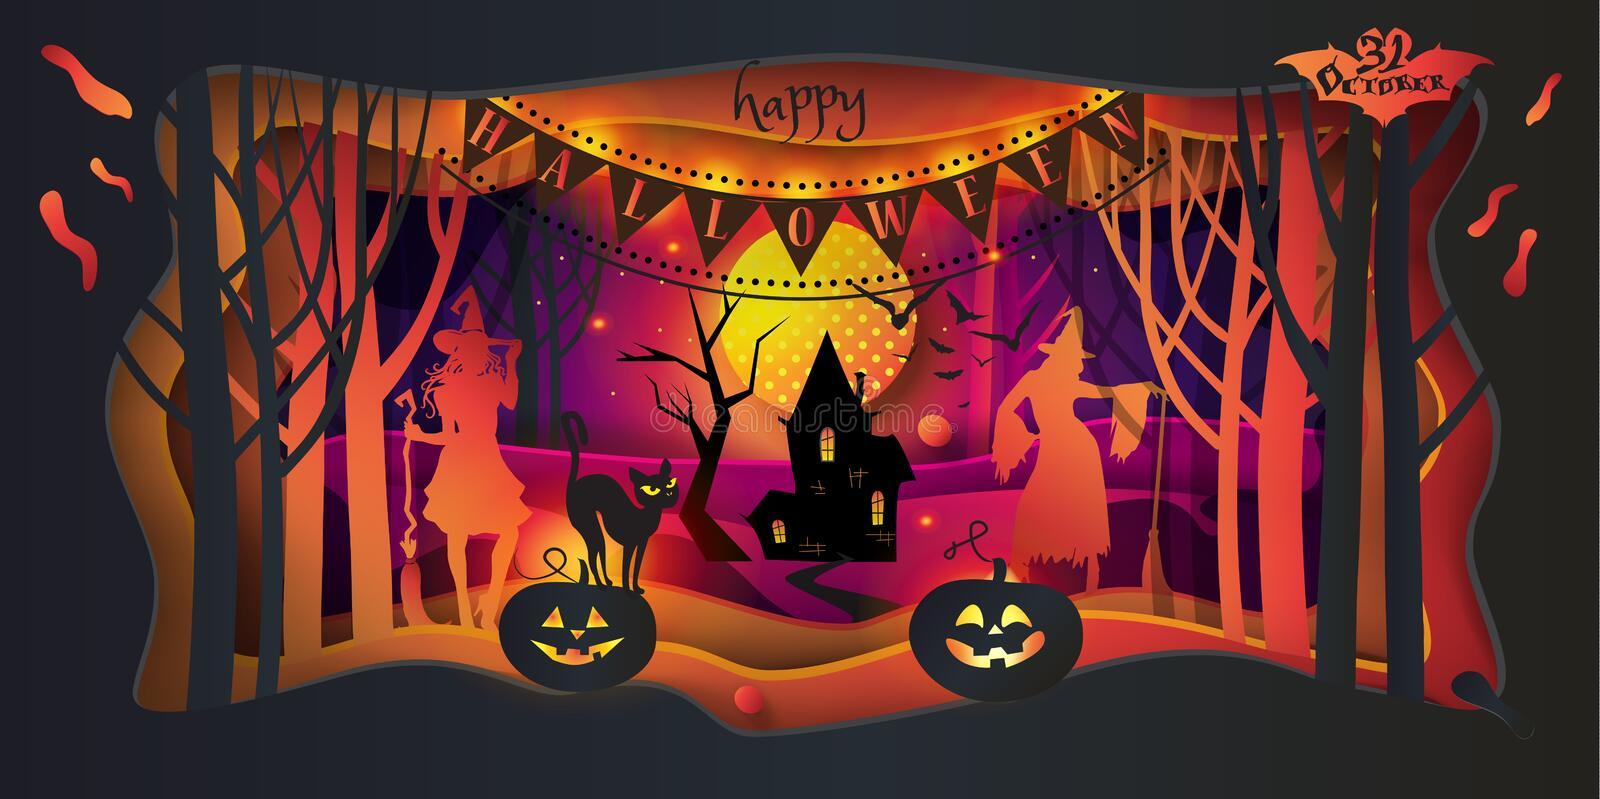 Happy Halloween trick or treat 31 october Party wallpaper stock illustration